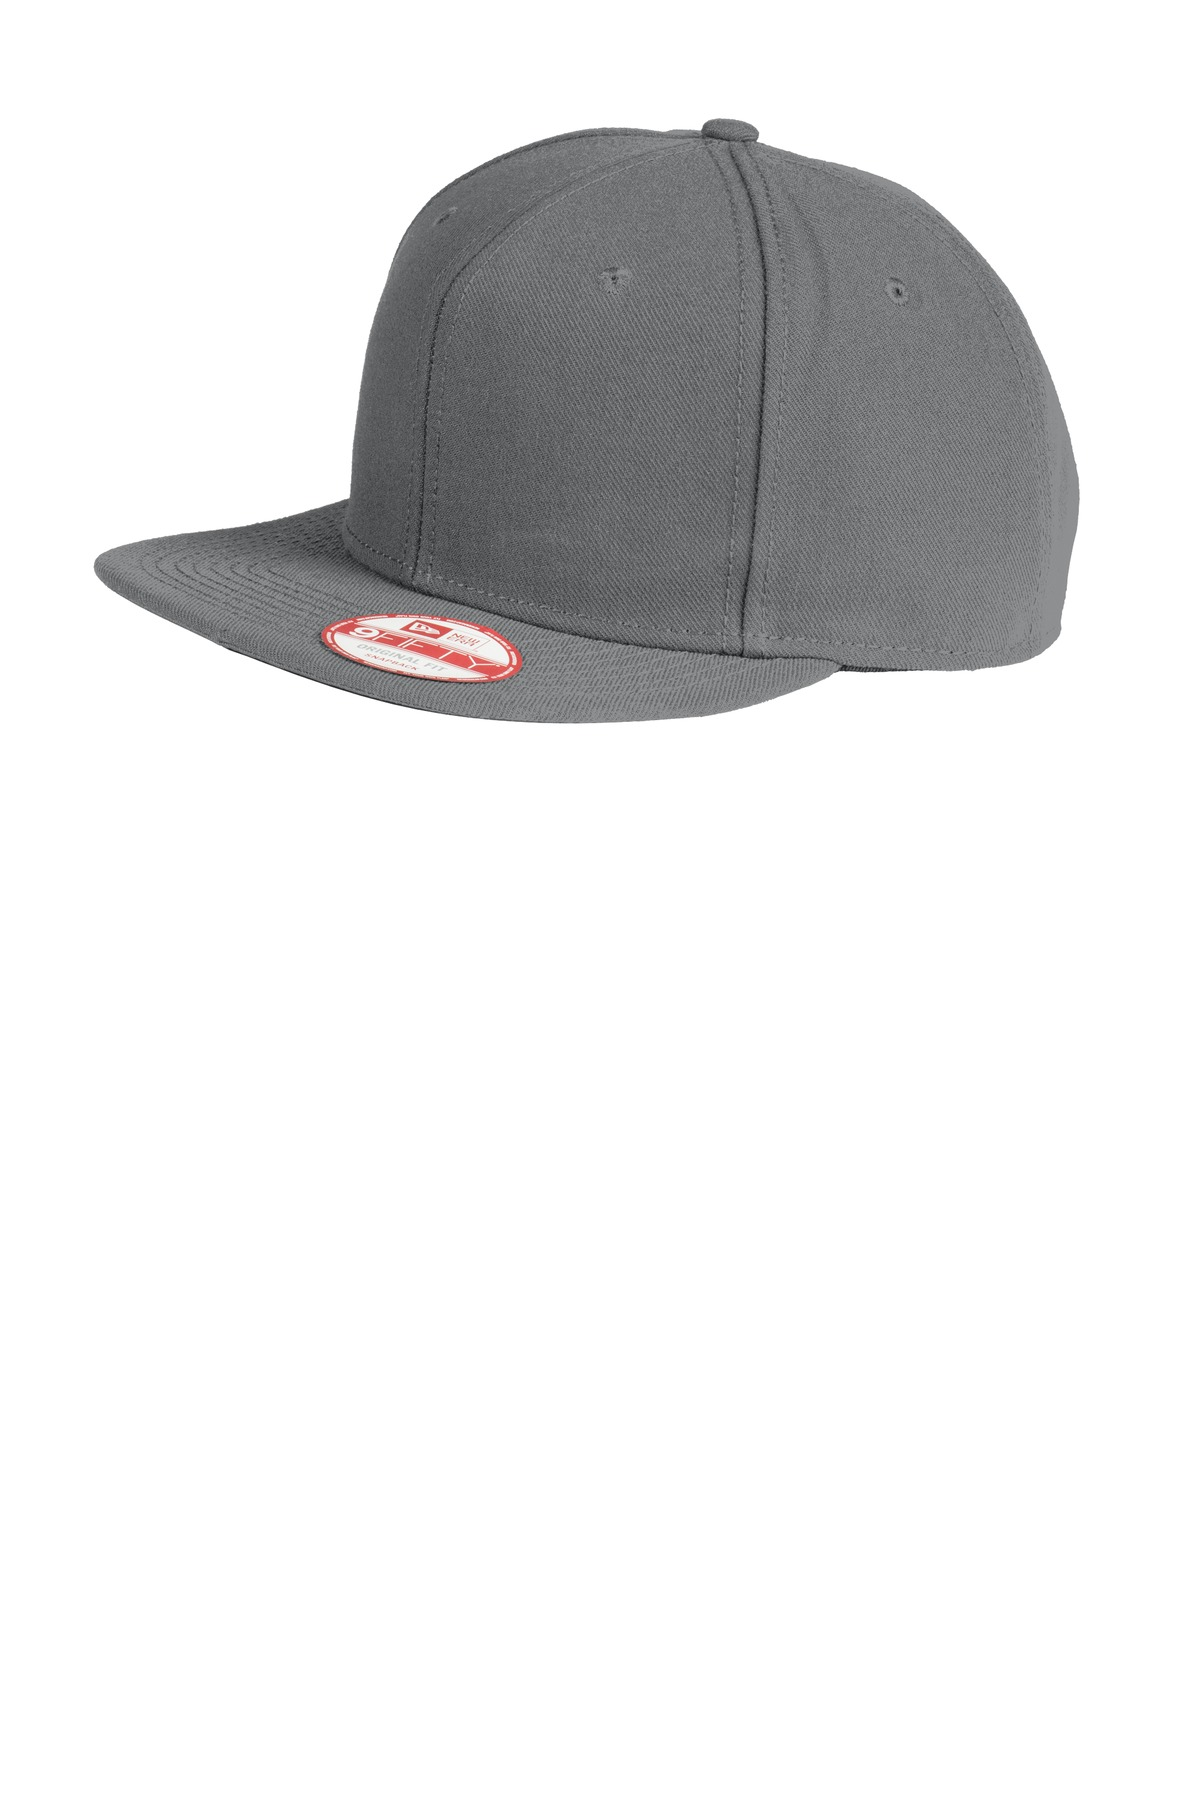 New Era ®  Original Fit Flat Bill Snapback Cap. NE402 - Graphite